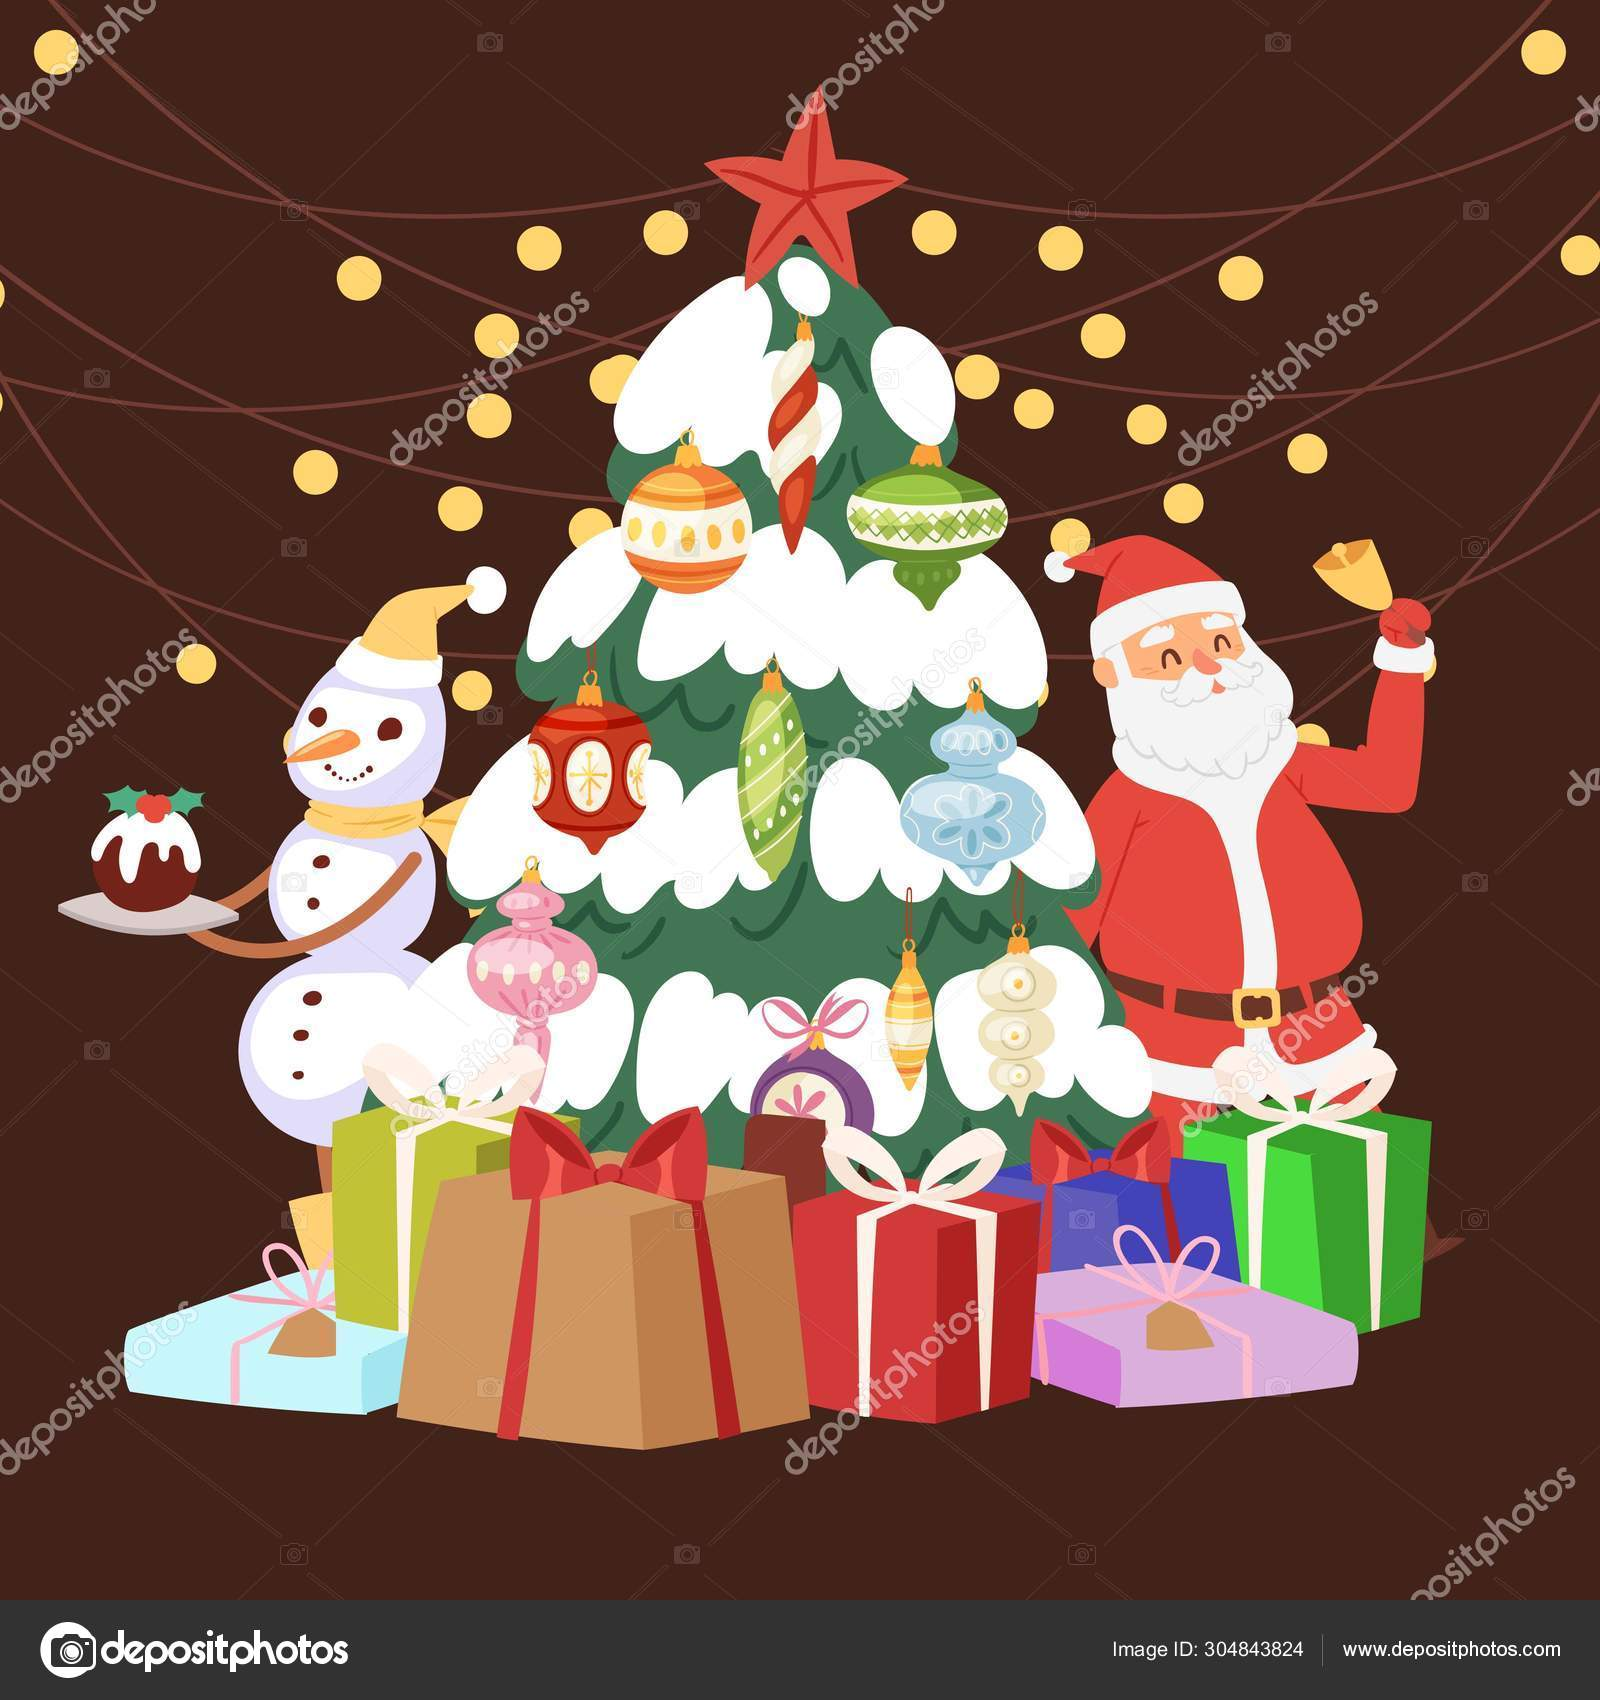 Christmas Tree With Cartoon Santa Claus Gift Boxes Light And Snowman Vector Illustration Presents And Decoration Balls For Merry Christmas Tree And A Happy New Year Stock Vector C Vectorshow 304843824 Disney series & full length cartoons in english. https depositphotos com 304843824 stock illustration christmas tree with cartoon santa html